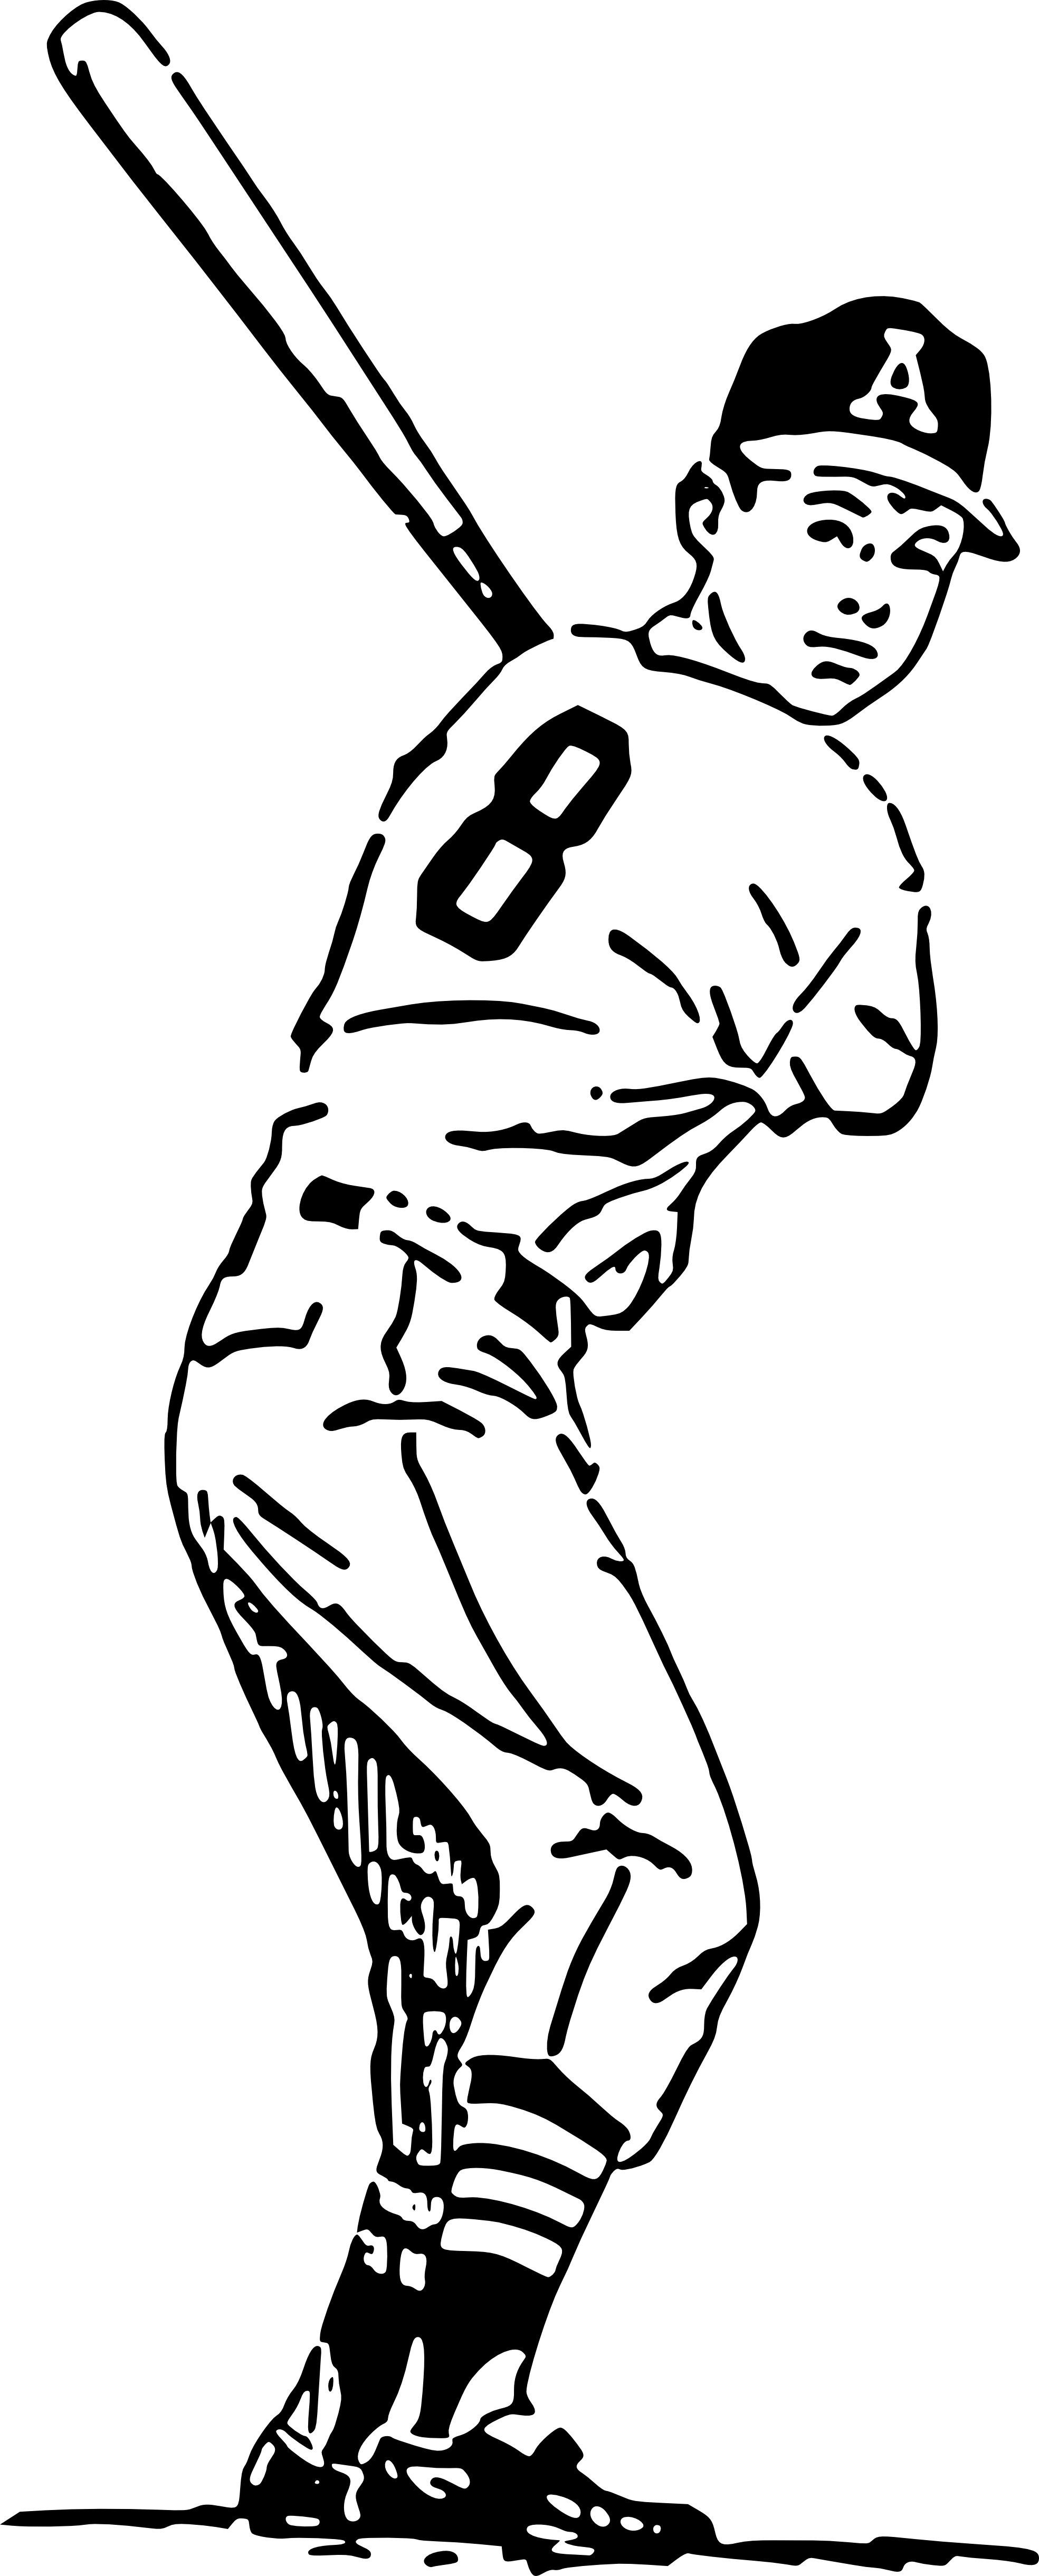 Baseball hitting clipart picture black and white stock Baseball Clipart Black And White | Clipart Panda - Free Clipart Images picture black and white stock